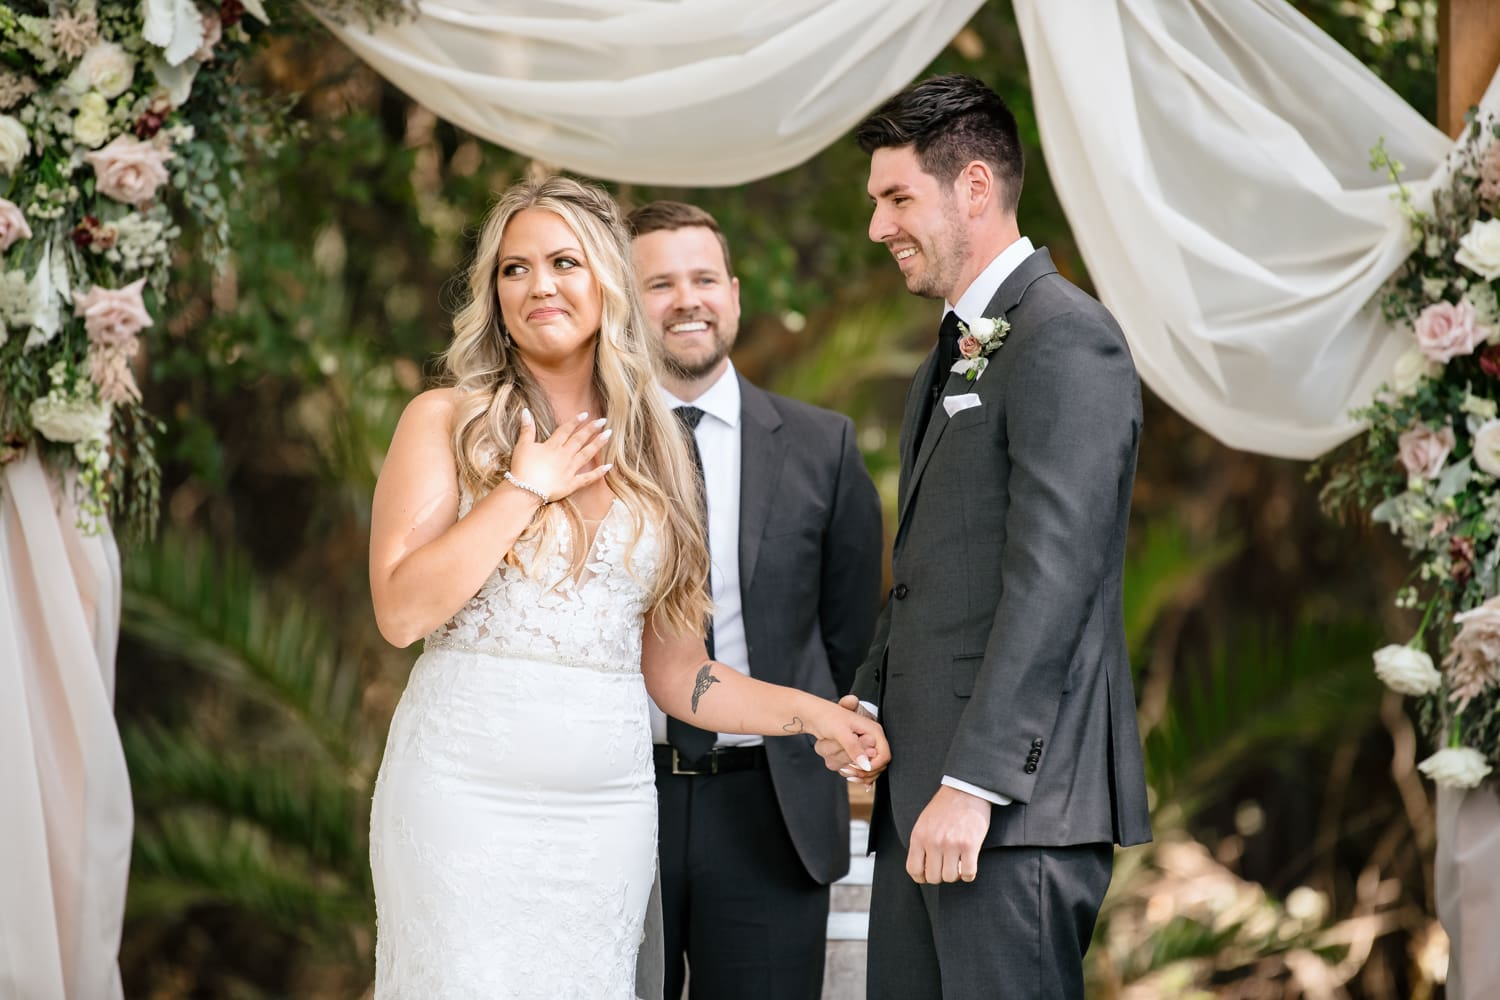 Bride and groom at Stone House wedding ceremony at Temecula Creek Inn